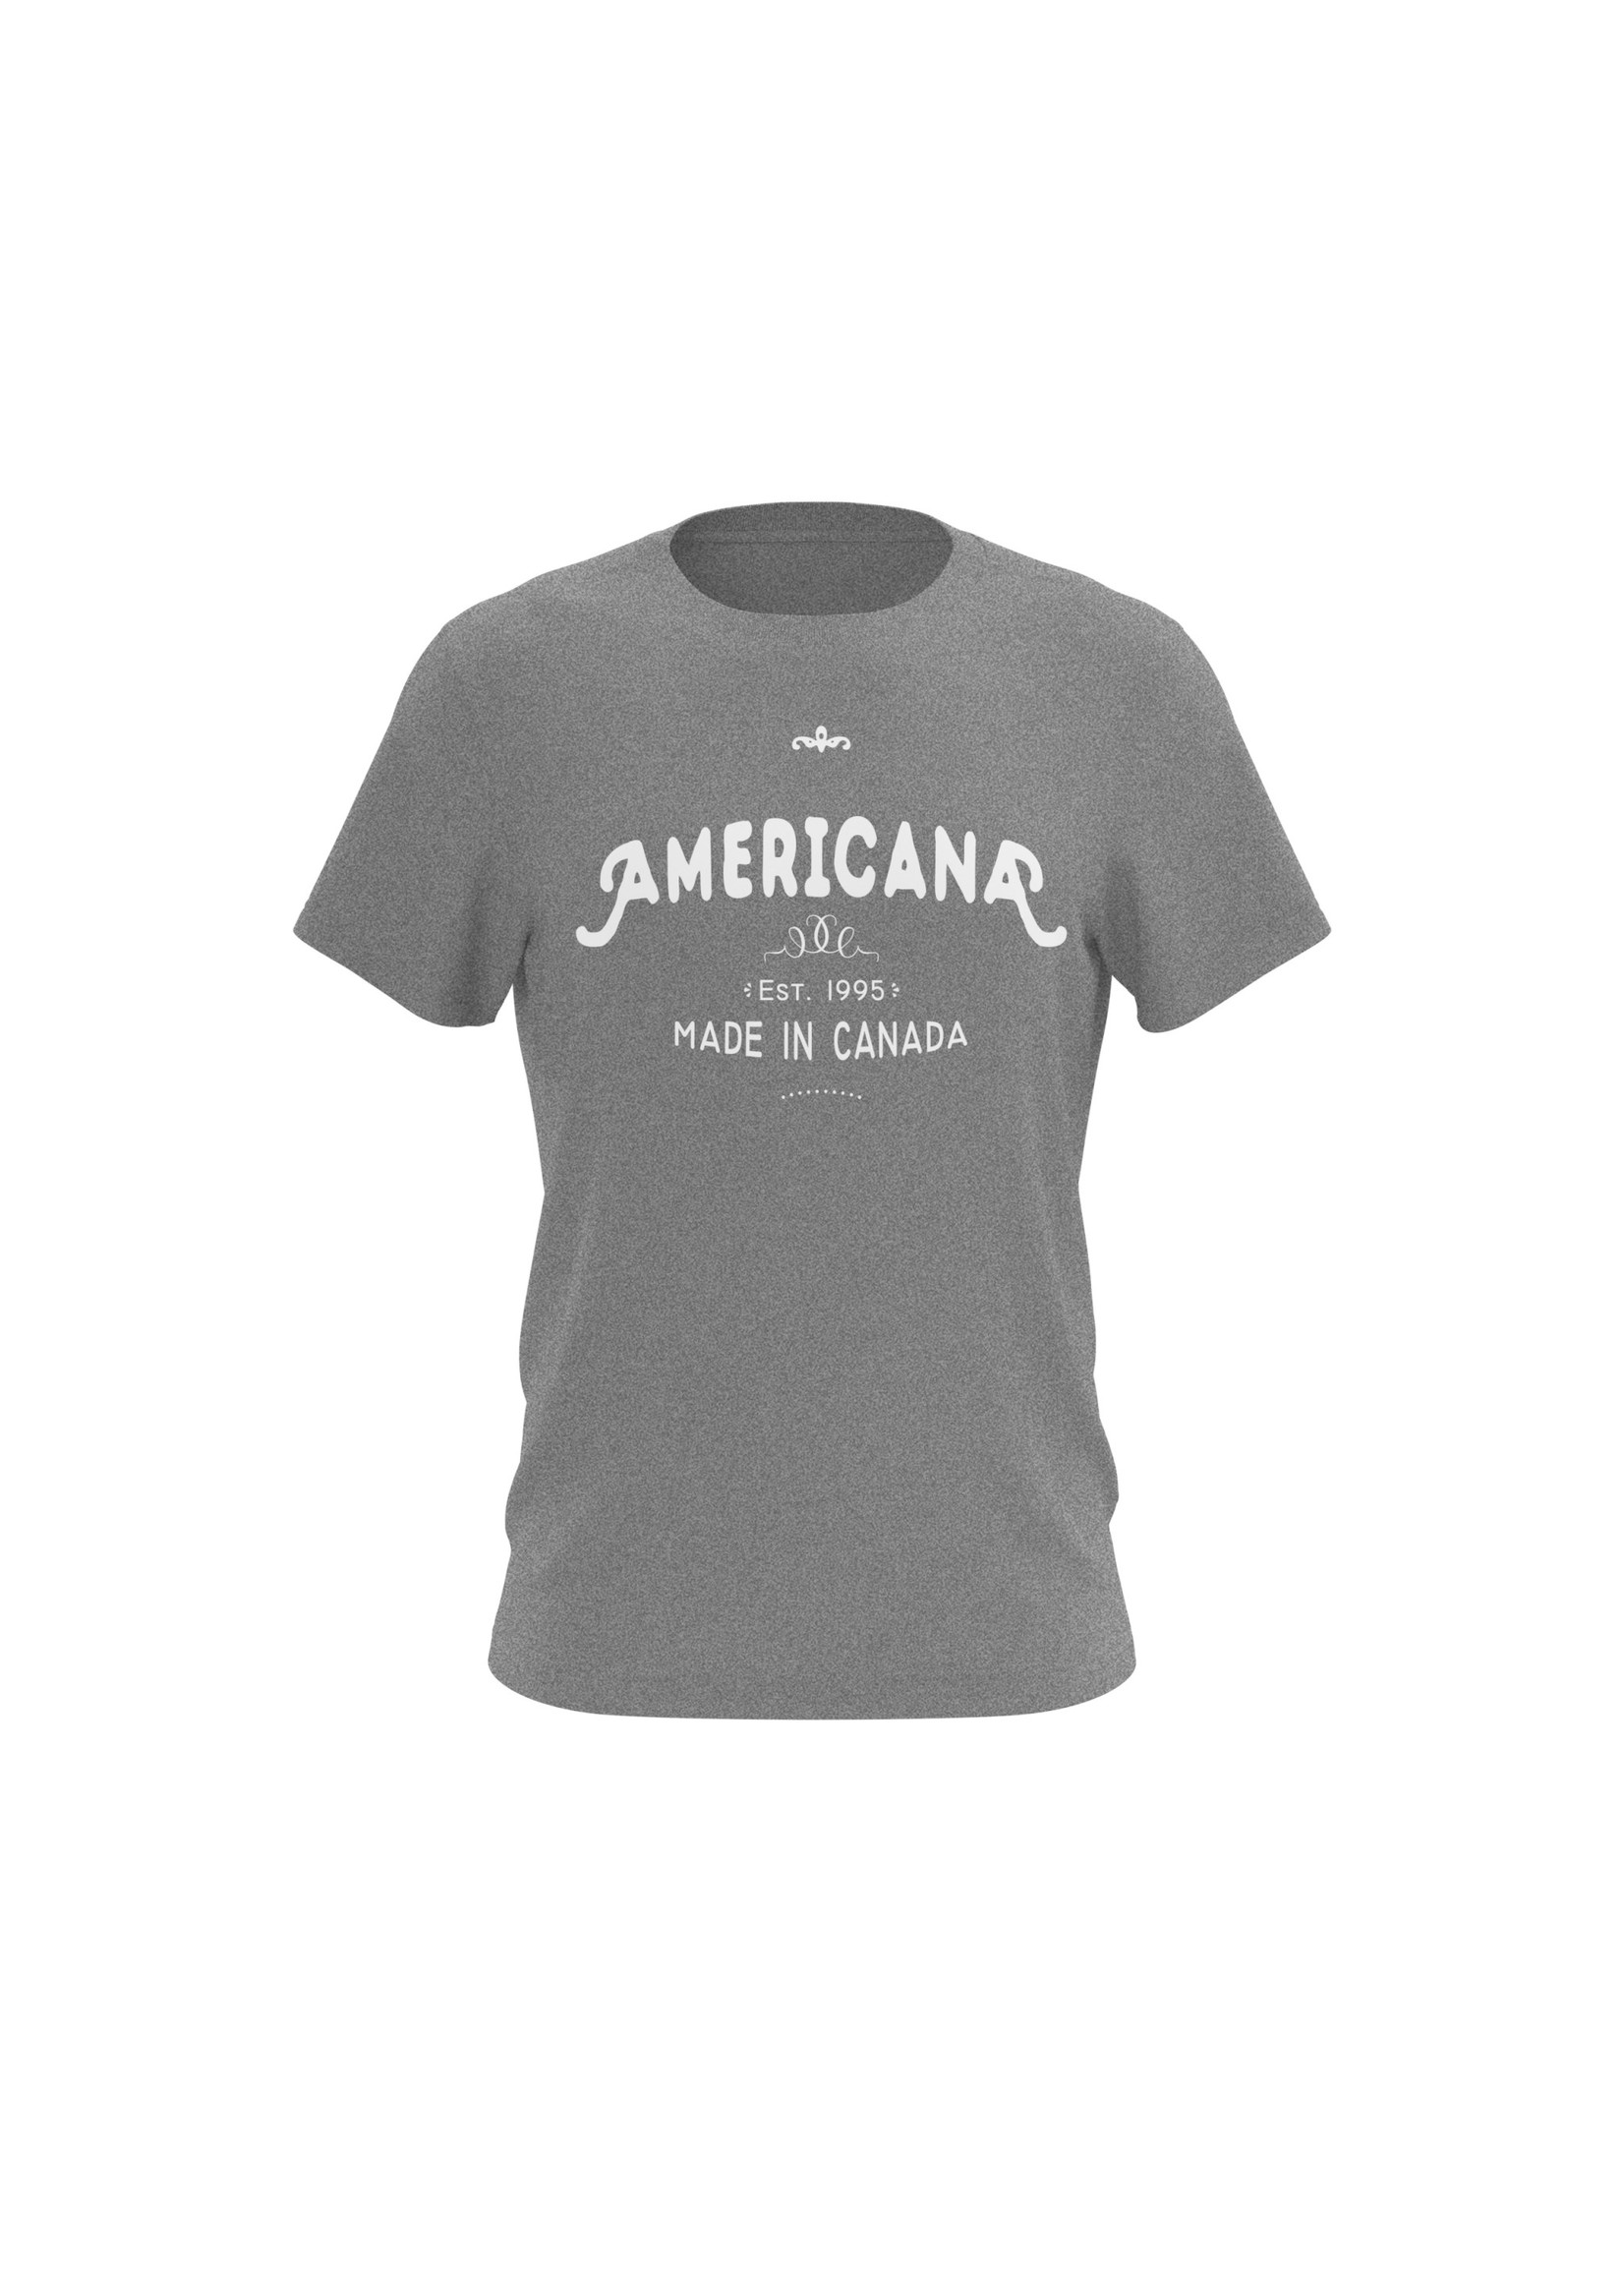 ART & LUTHERIE T-SHIRT ART & LUTHERIE AMERICANA